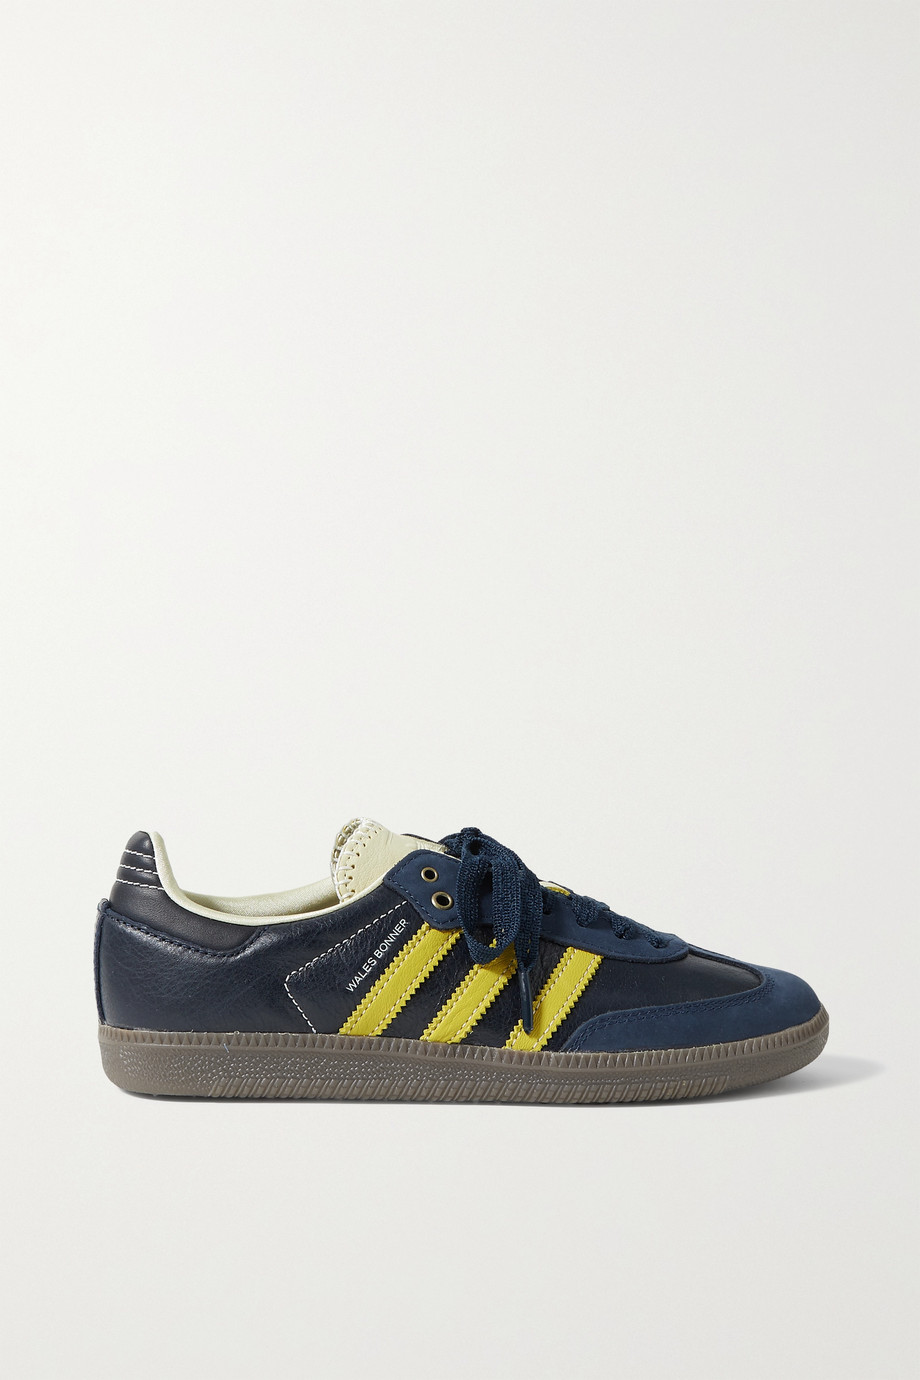 adidas Originals Baskets en cuir à finitions en nubuck Samba x Wales Bonner